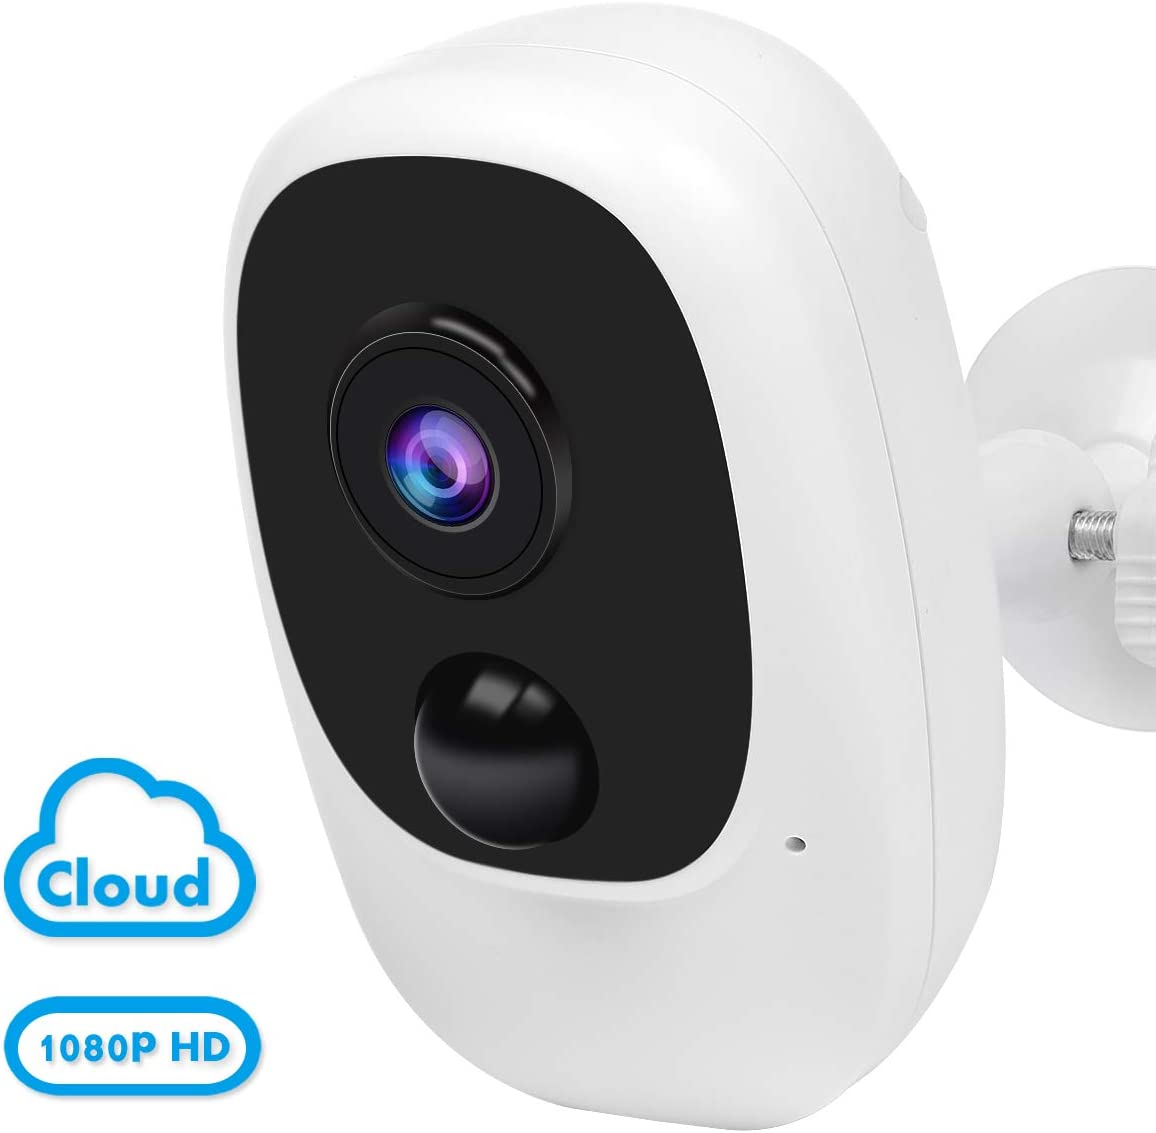 Wireless Outdoor Security Camera,Rechargeable Battery Powered WiFi Camera,1080P Home Security Camera with 2-Way Audio,Wi-Fi IP Camera with Motion Detection,Night Vision,Waterproof,Cloud Micro SD Card